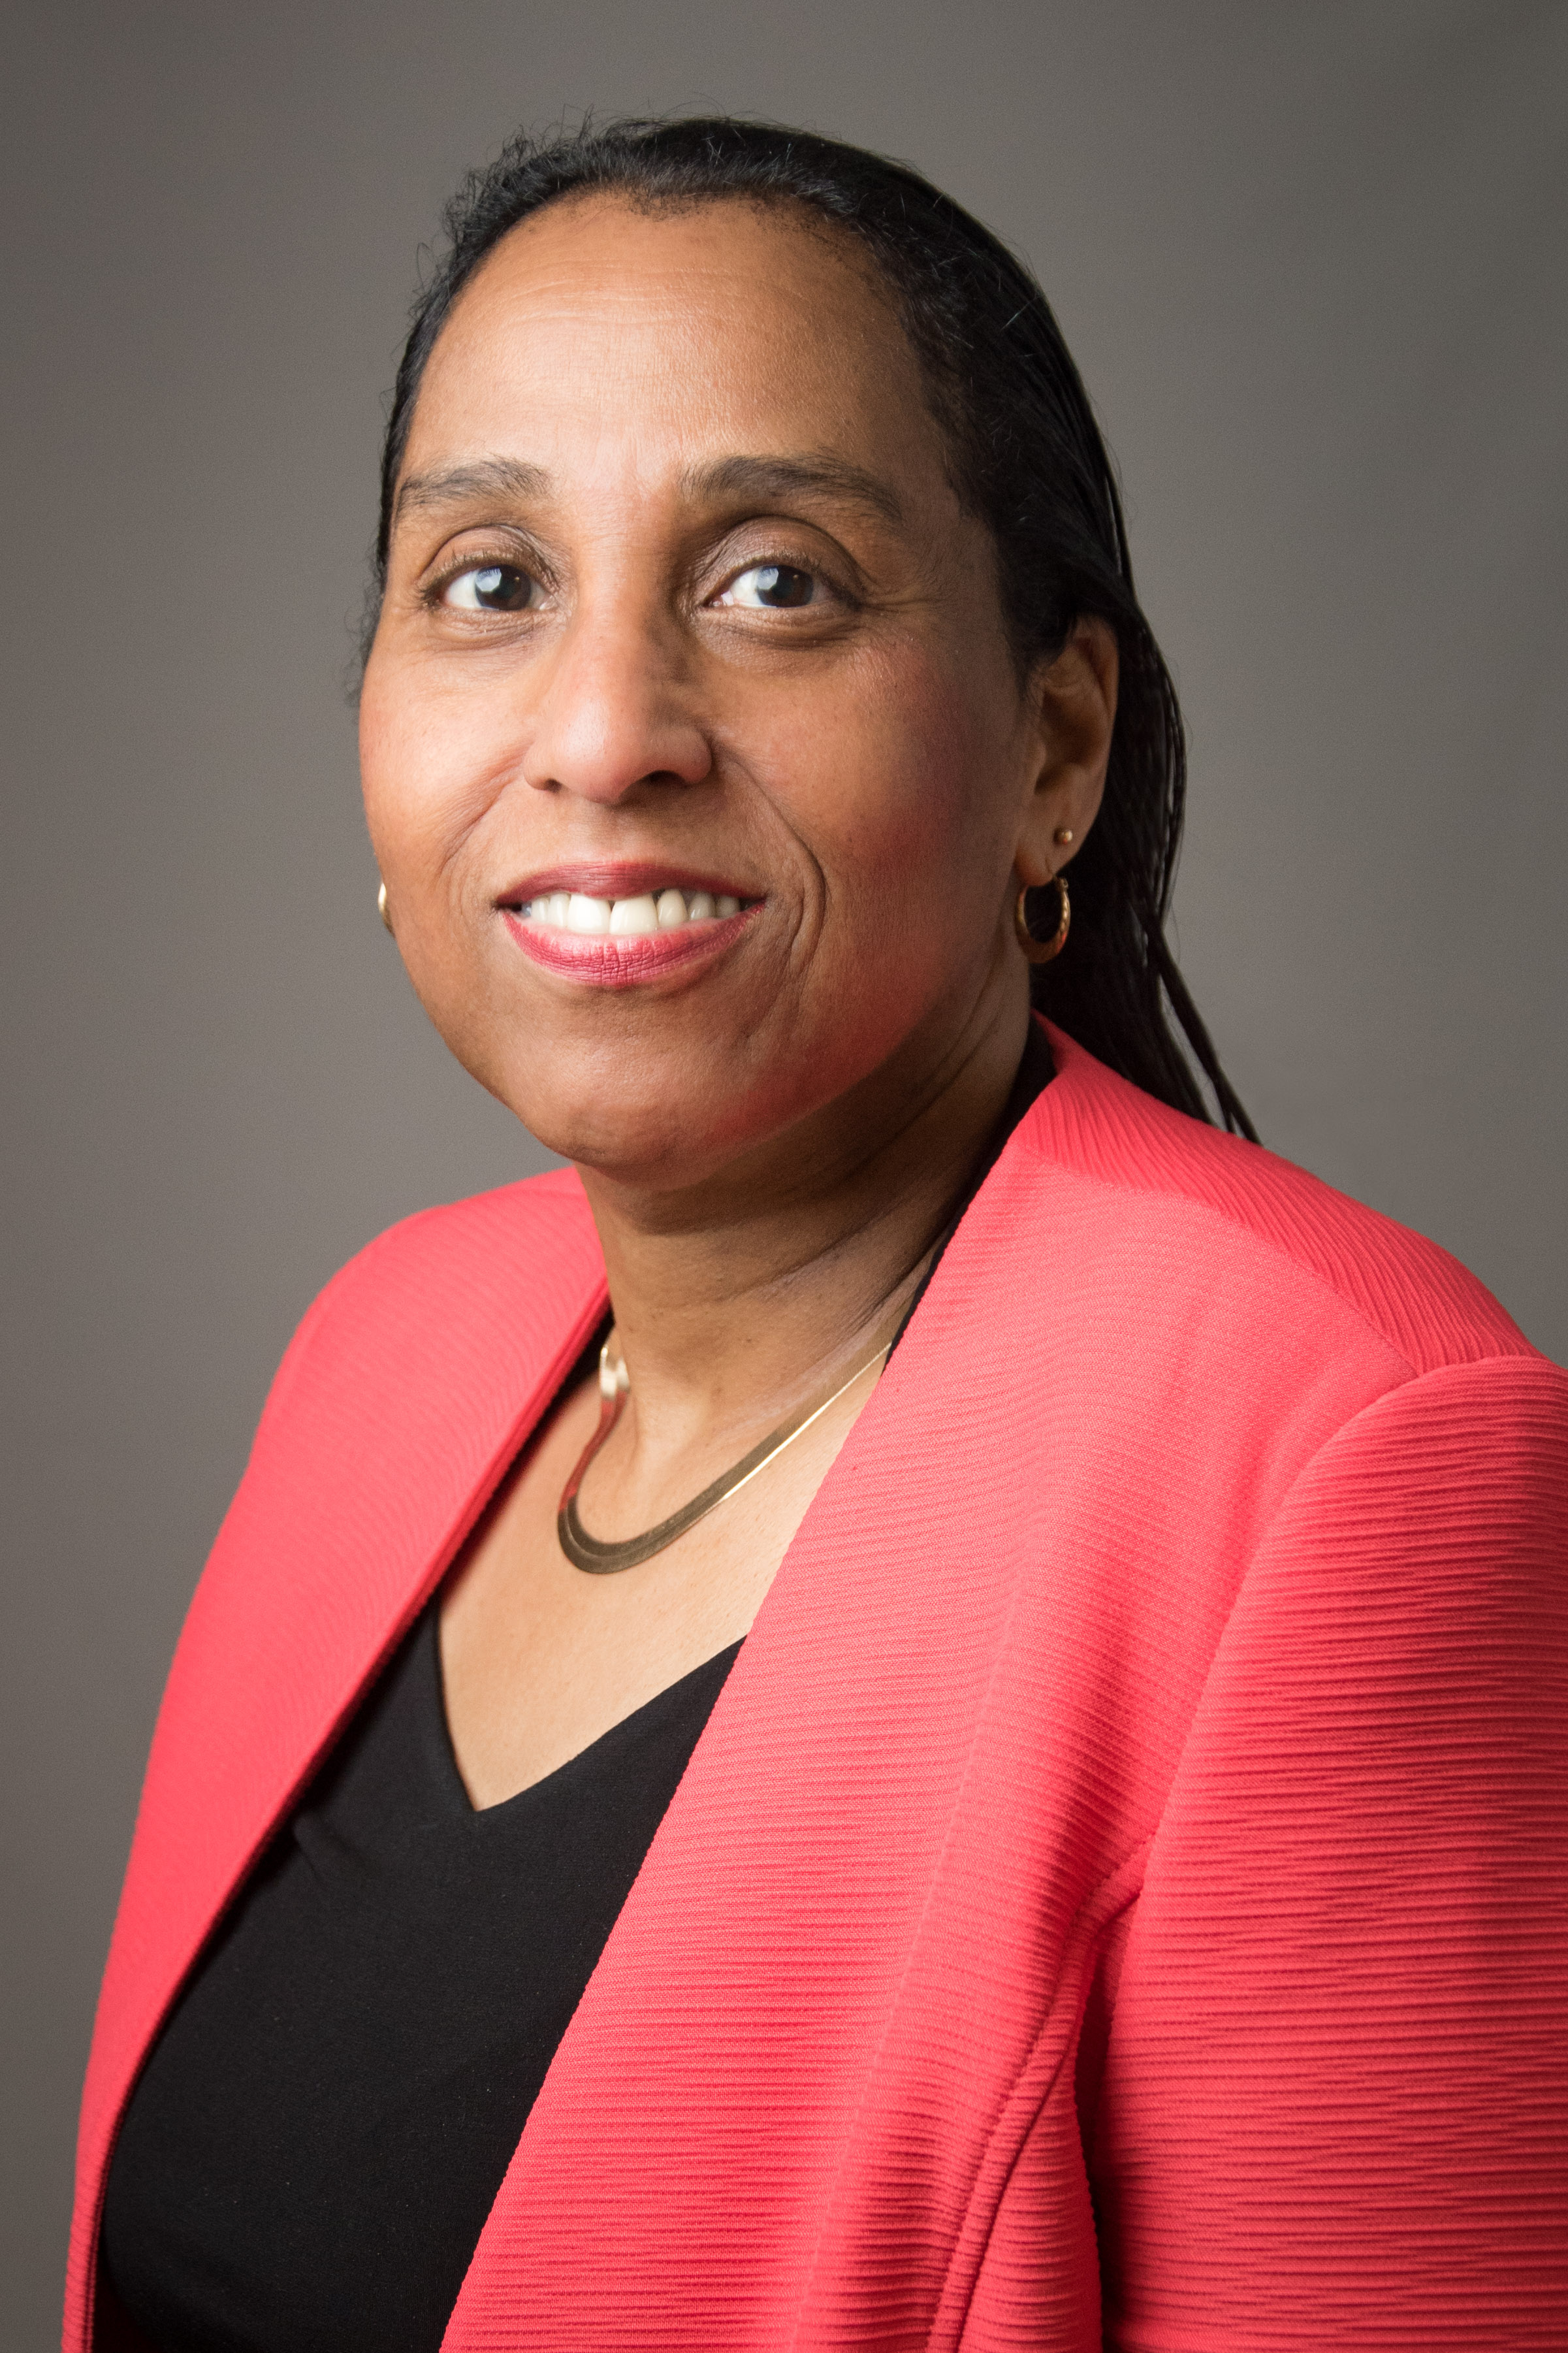 Dr. Marie Chisholm-Burns